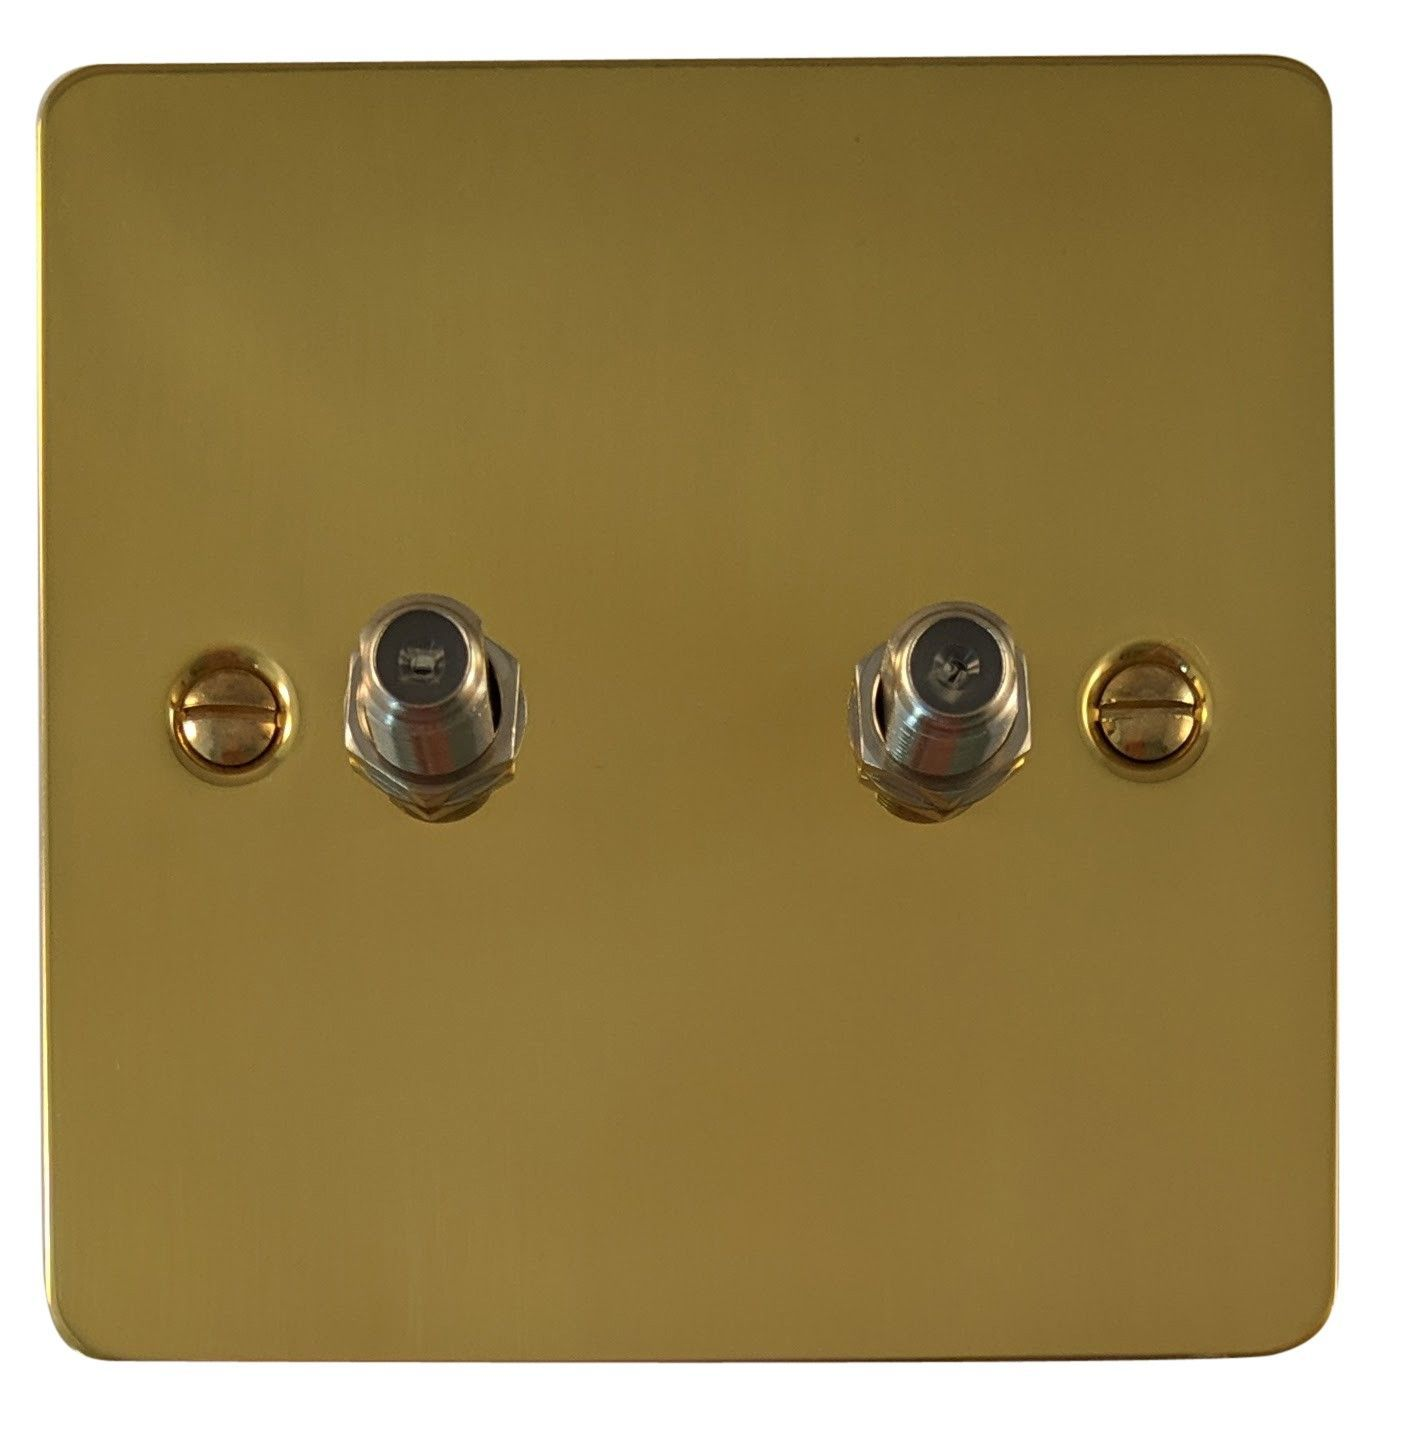 G&H FB237 Flat Plate Polished Brass 2 Gang Satellite Socket Point